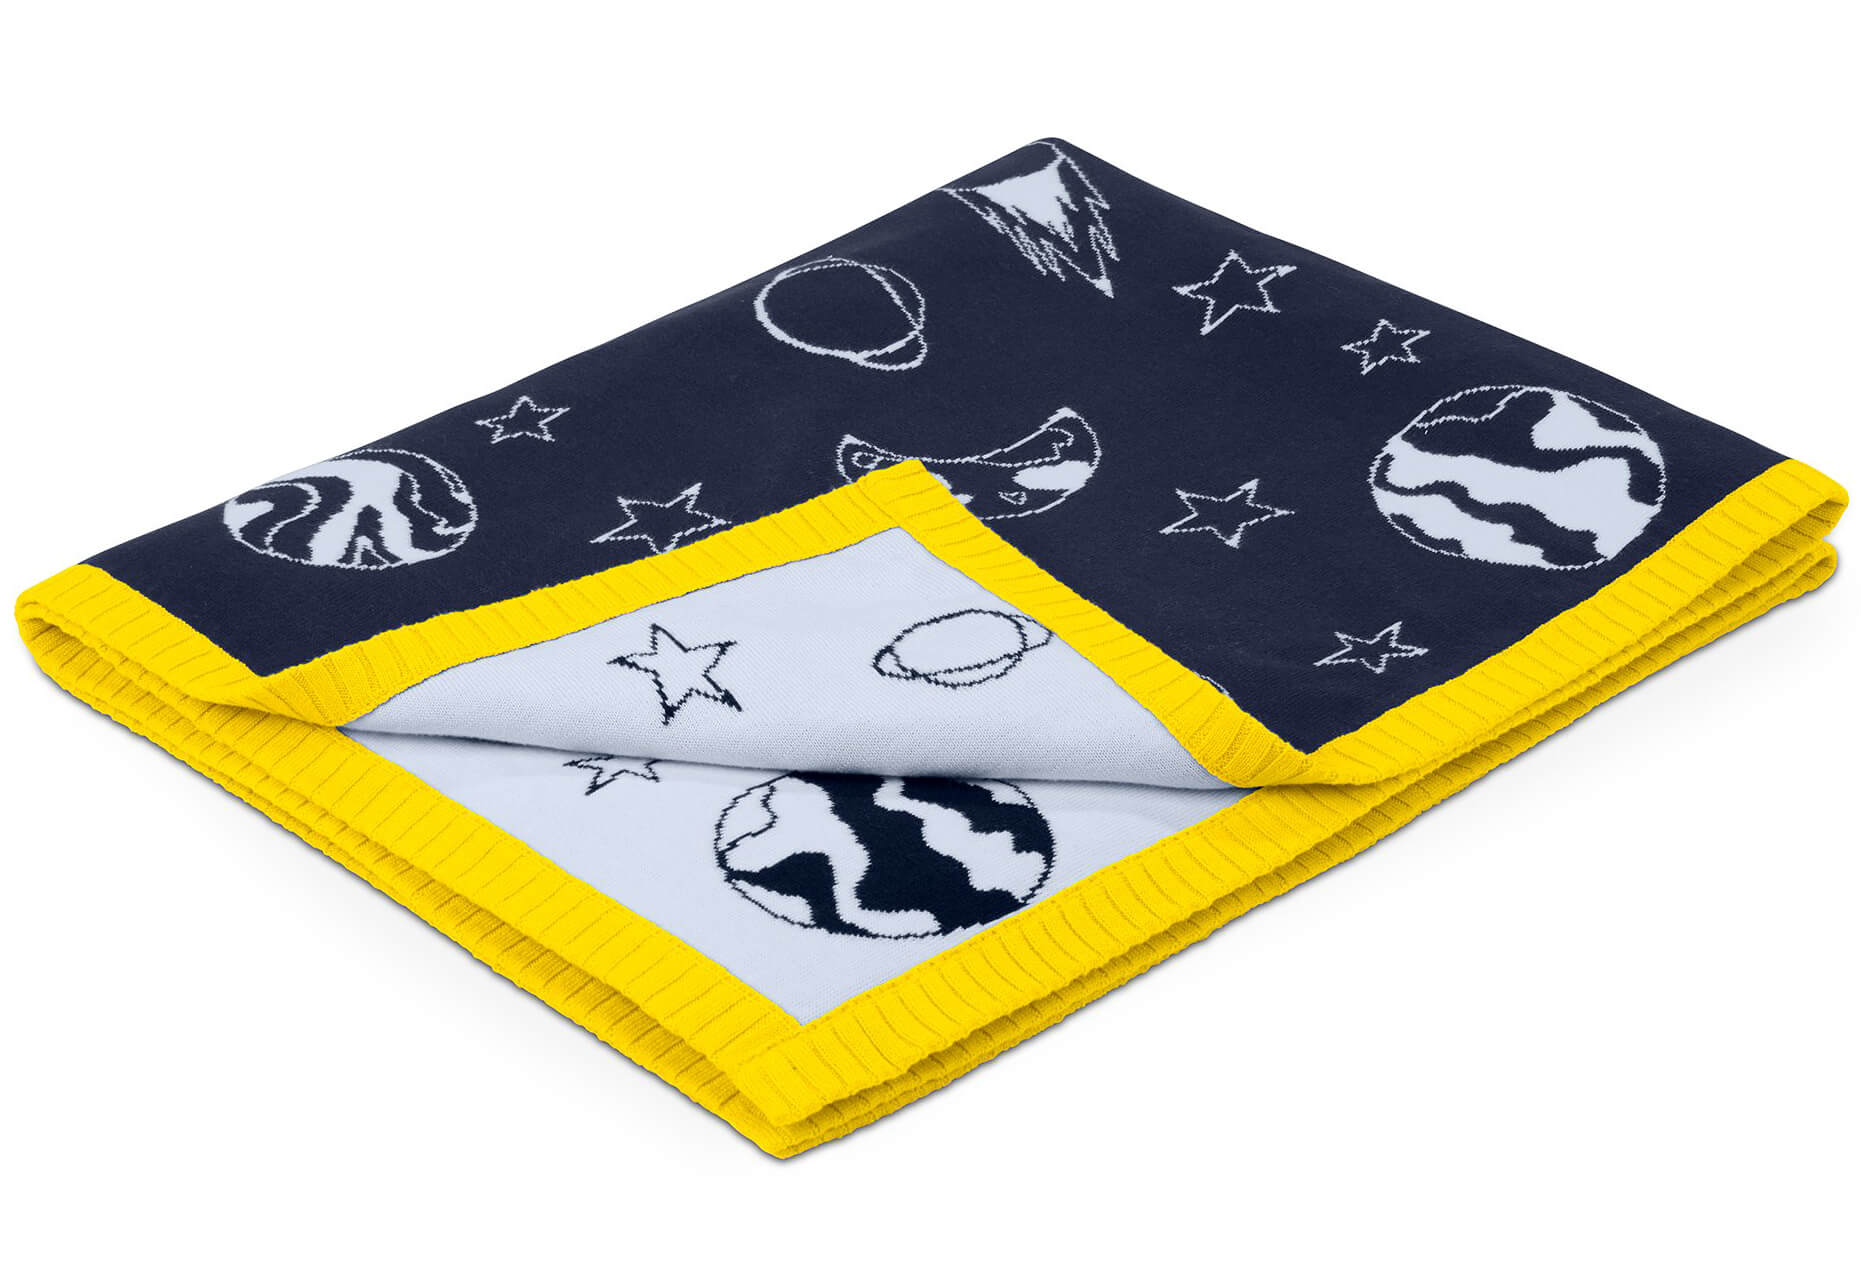 226ad13a3add Cybex Baby Blanket - Anna K - Space Rocket navy blue. Tap to expand